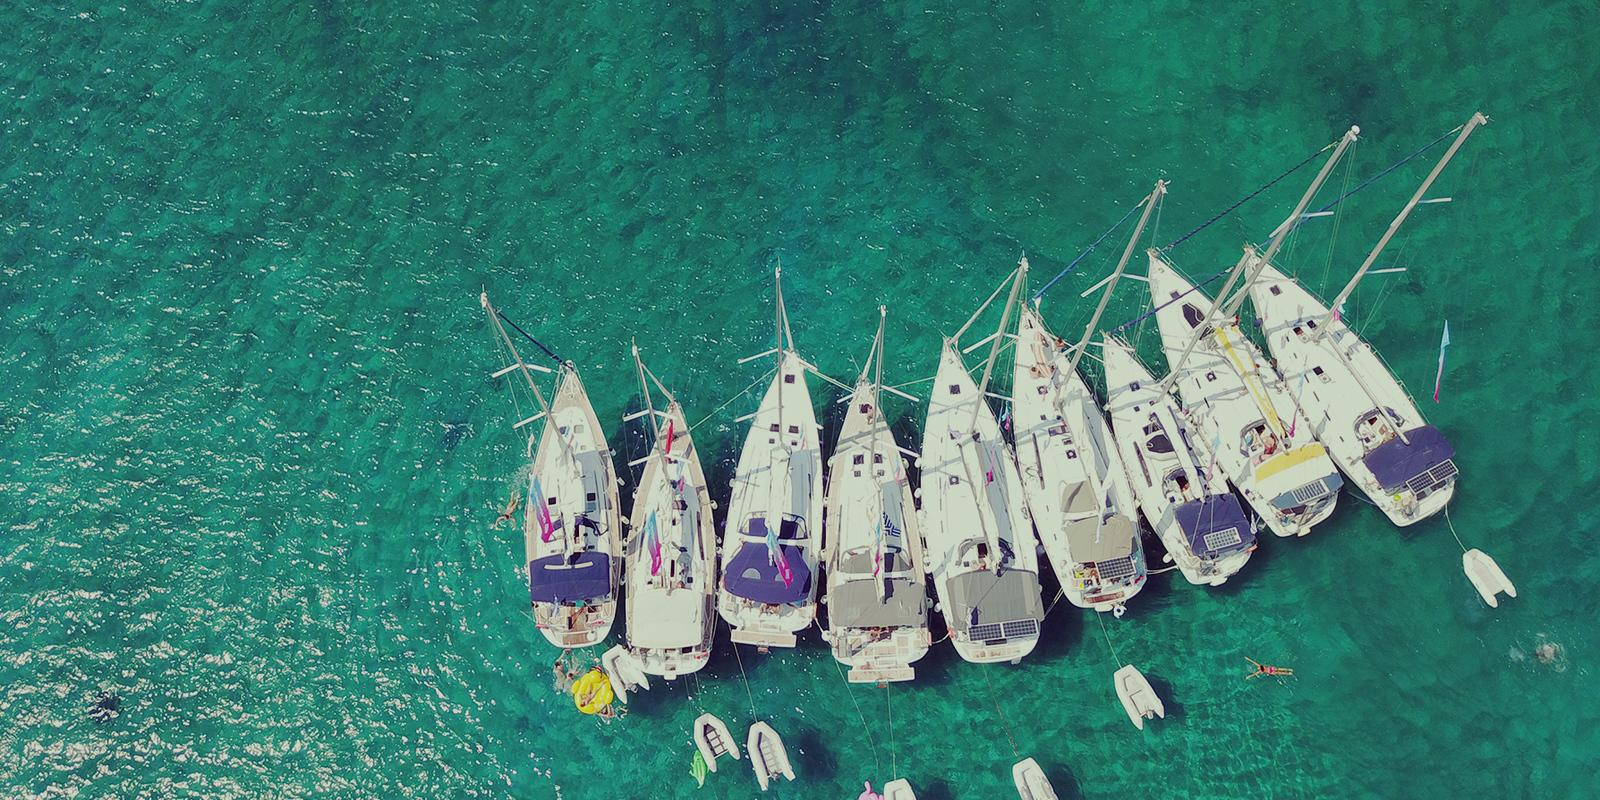 ABSOLUTE EASY Yachtoo - Flotilla at Porquerolles for the 1st of May bridge